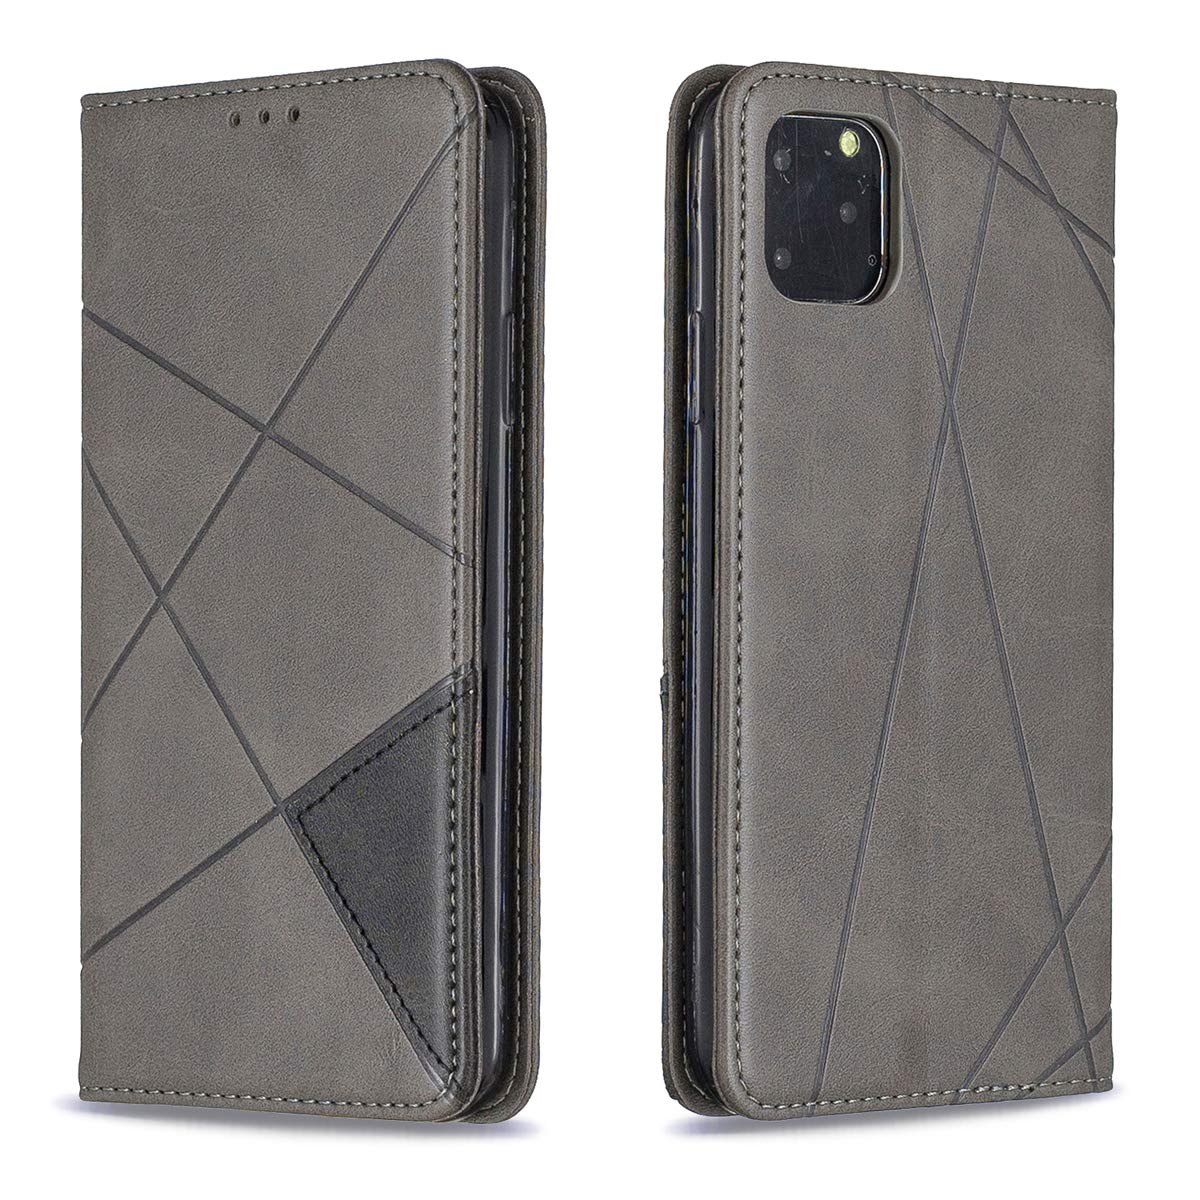 SDB Wallet Case for iPhone 11 Pro Max Case Card Holder Flip Kickstand PU Leather Fashion Stripe Protective Cases Cover with Lanyard Hole Compatible with iPhone 11 Pro Max 6.5 inch 2019, Grey